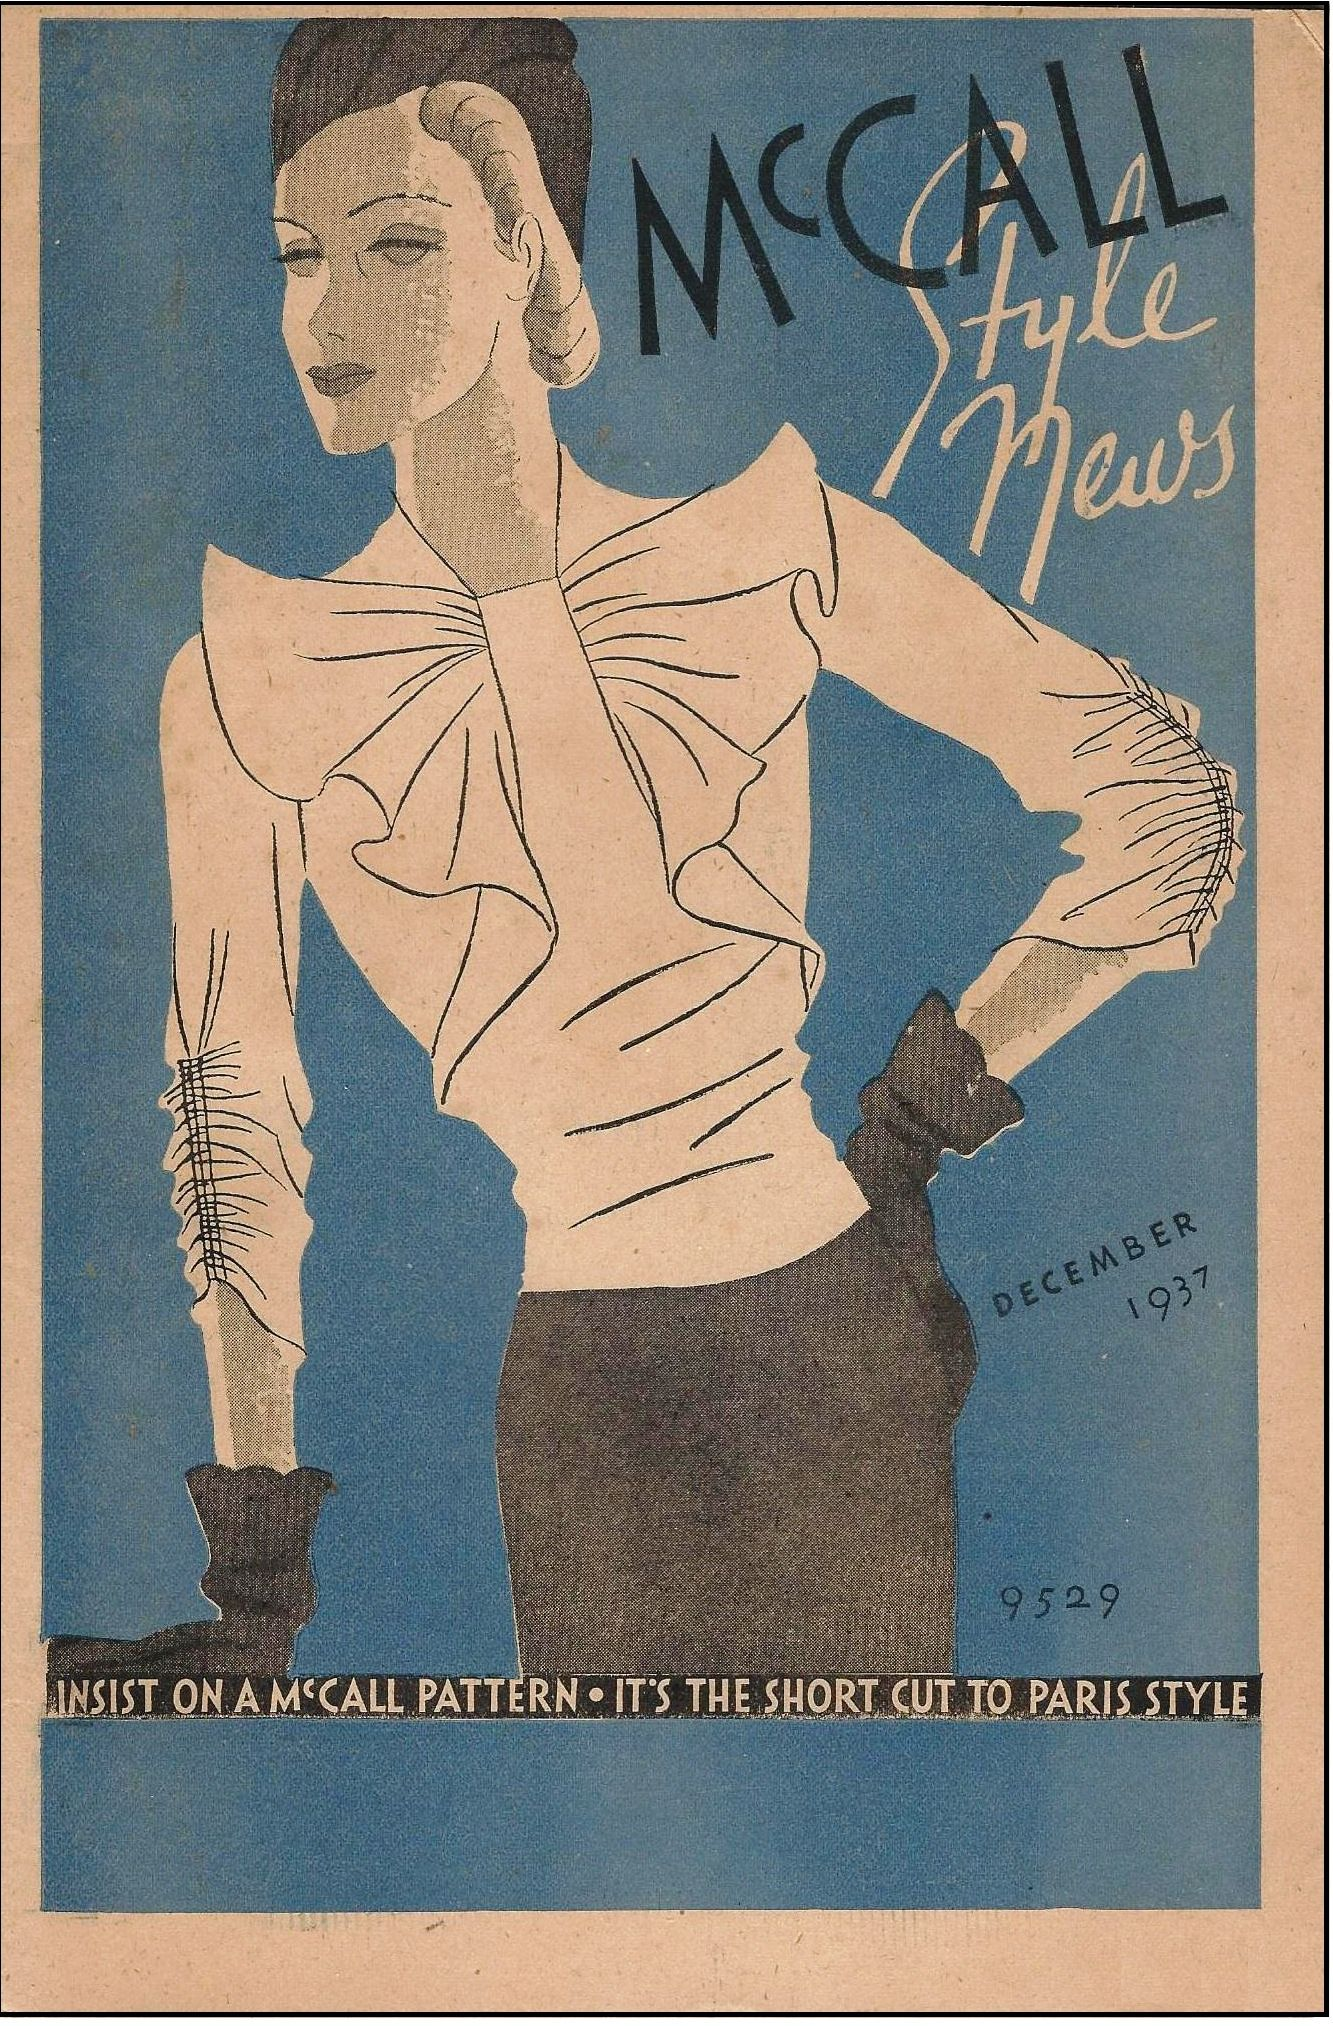 McCall 9529 in McCall Style News, December 1937 | 1930s McCall ...